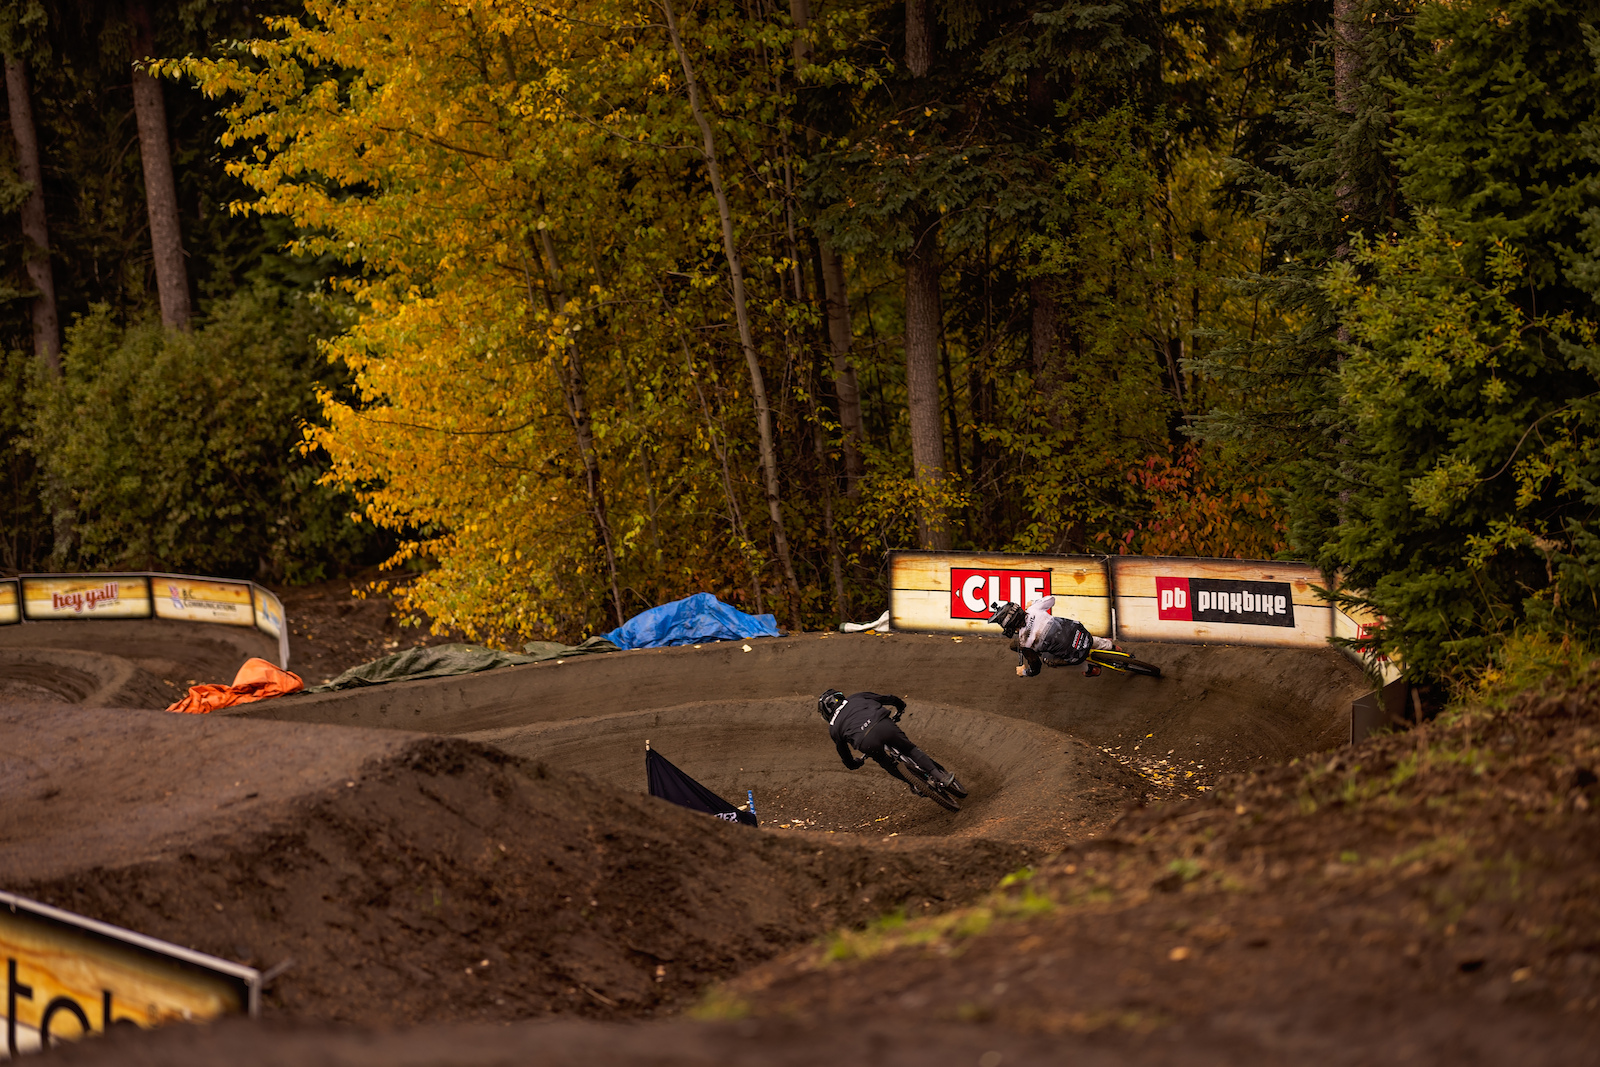 Bas Van Steenberge Keegan Wright running through the course. Fall time is all time here in Sunpeaks